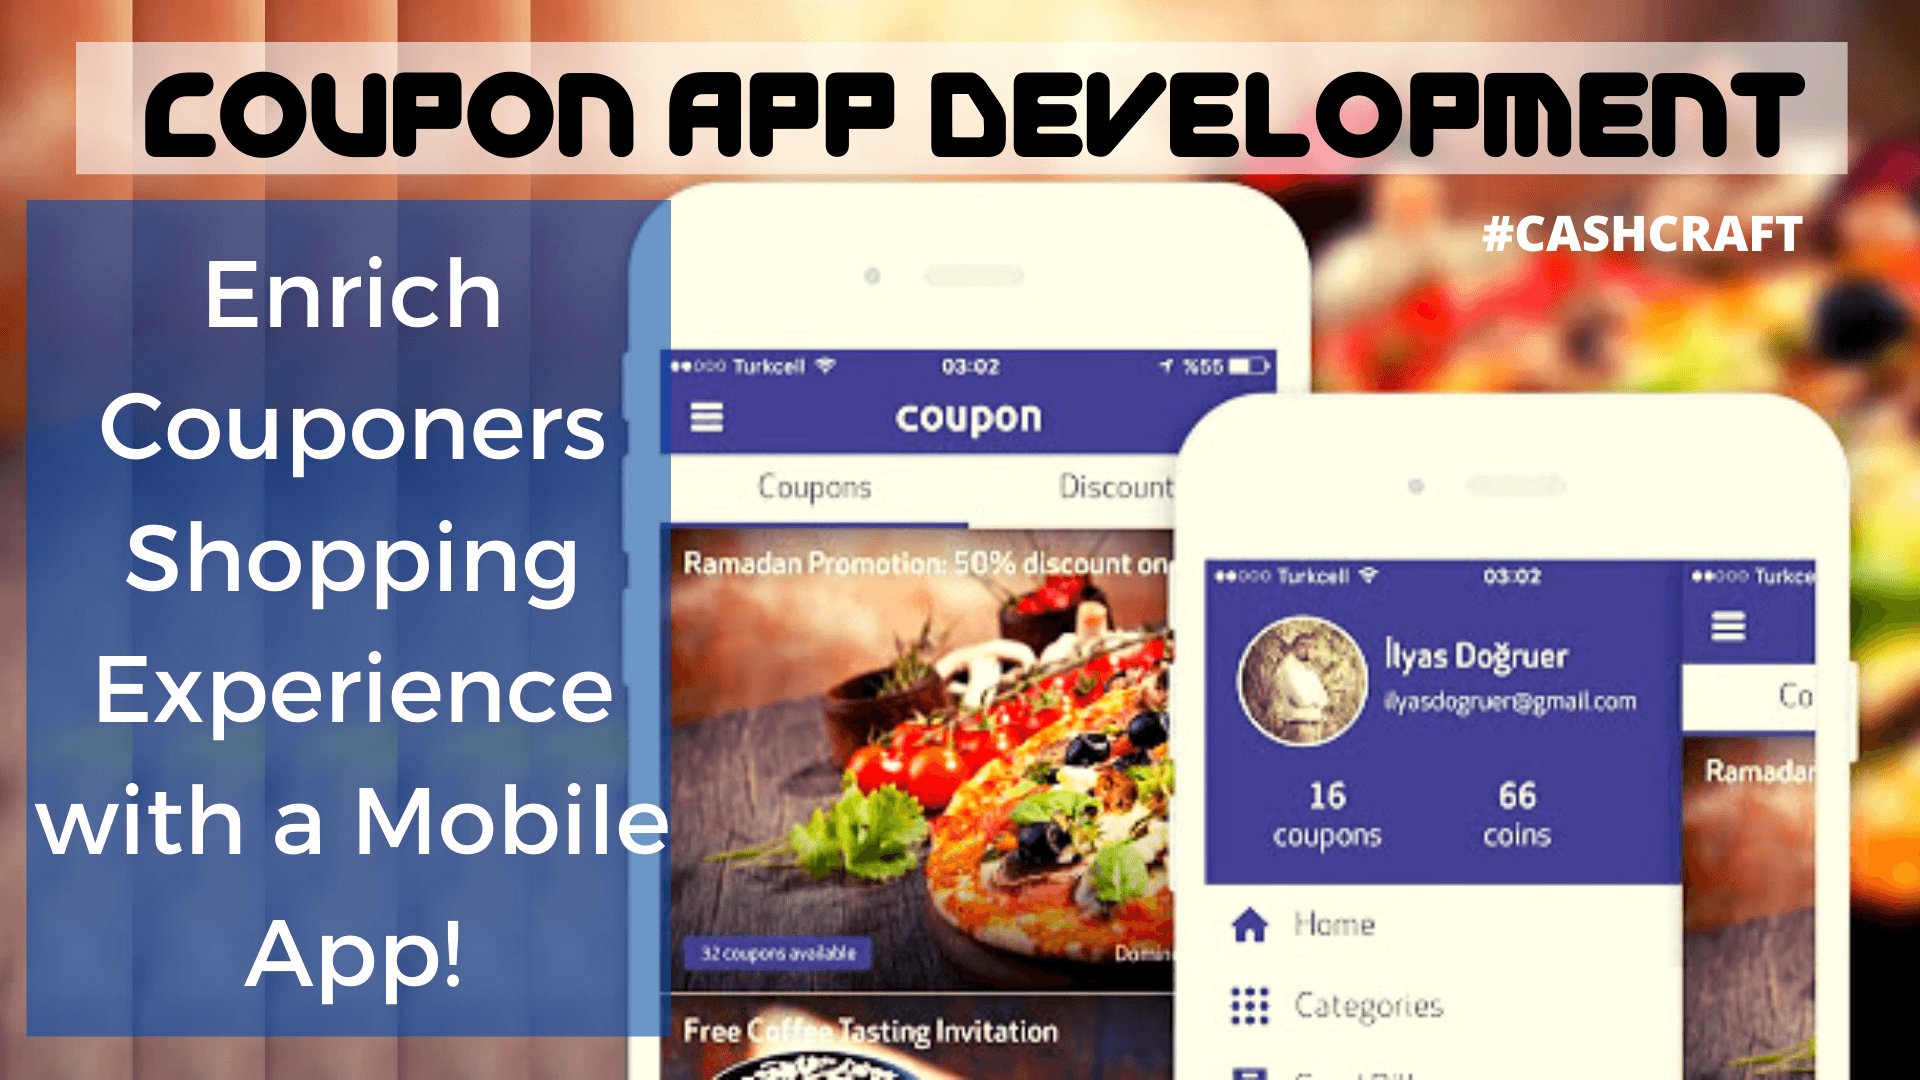 Coupon App Development - Enrich Couponers Shopping Experience